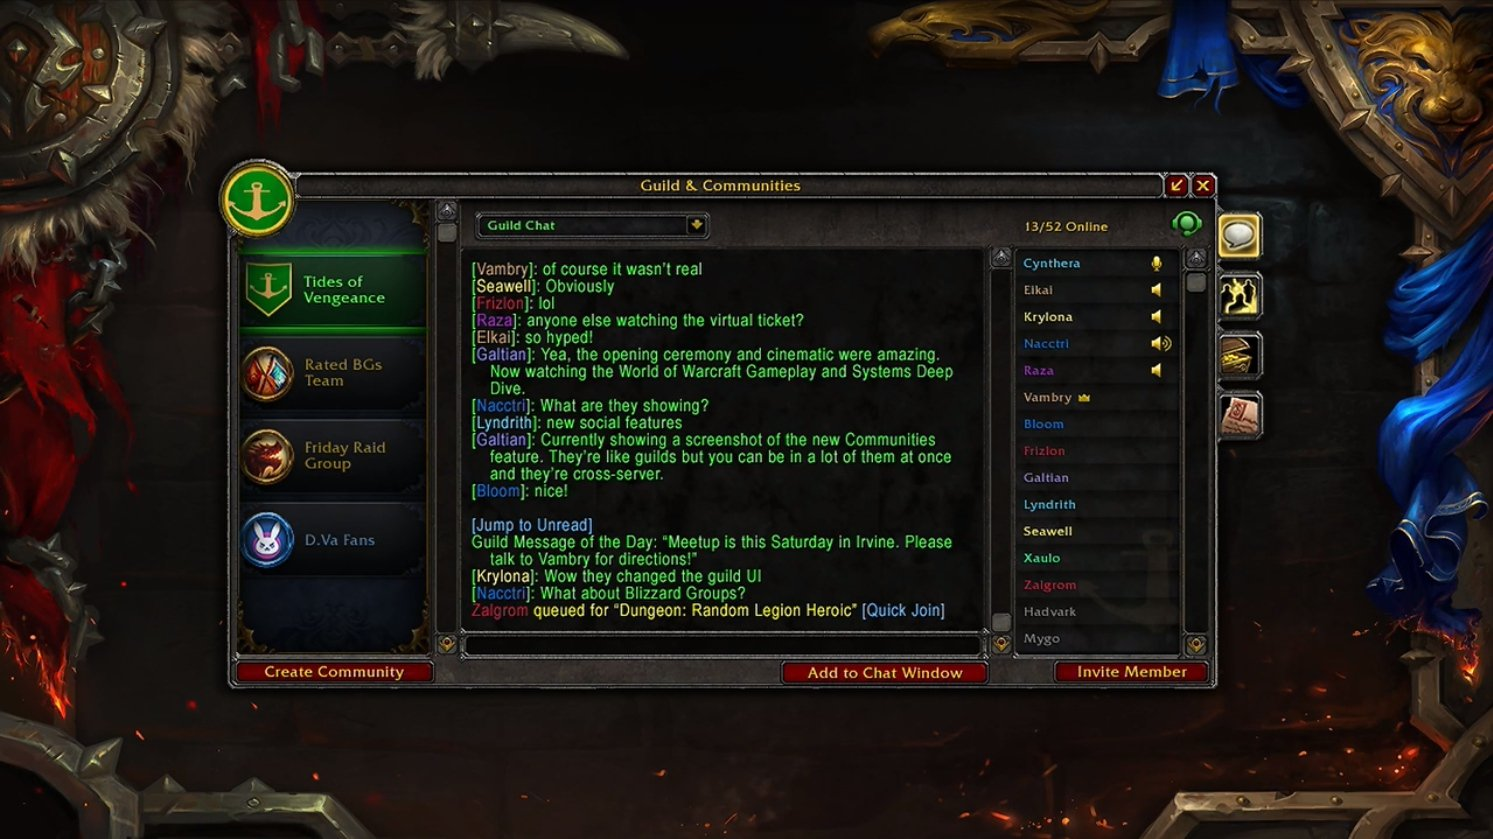 voice chat and battle net groups will be implemented into the wow